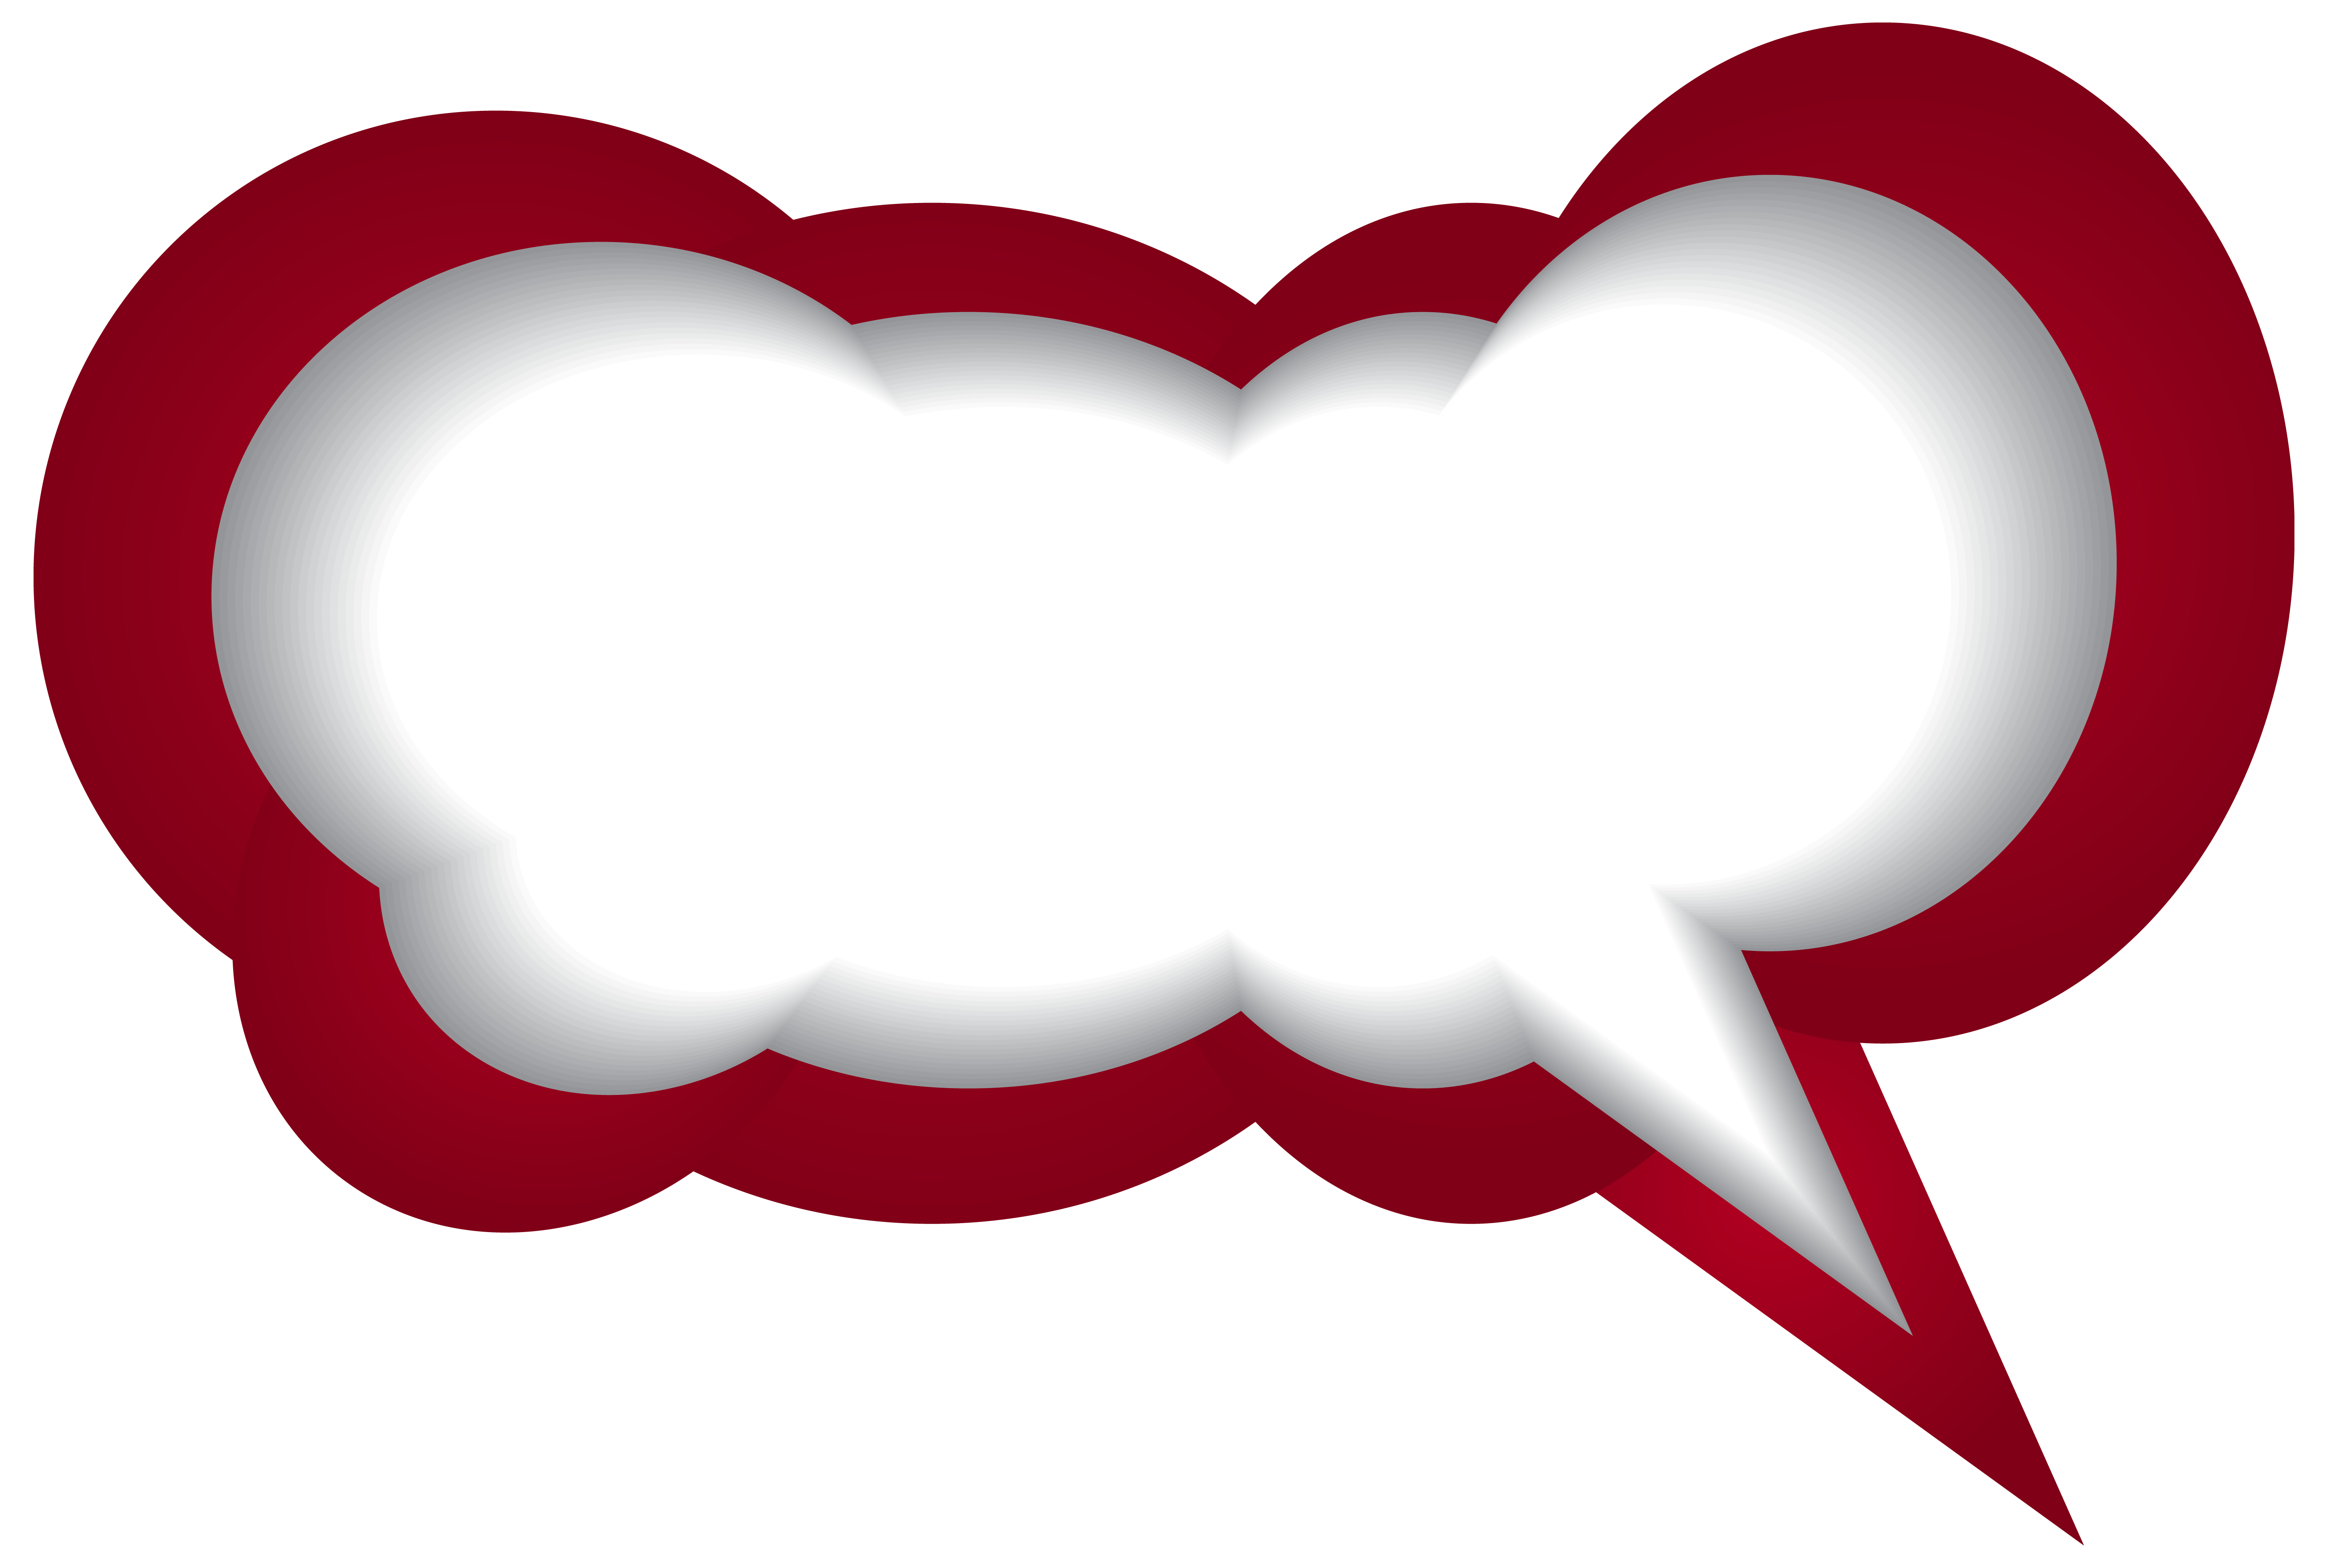 Speech bubble red white. Clipart balloon conversation